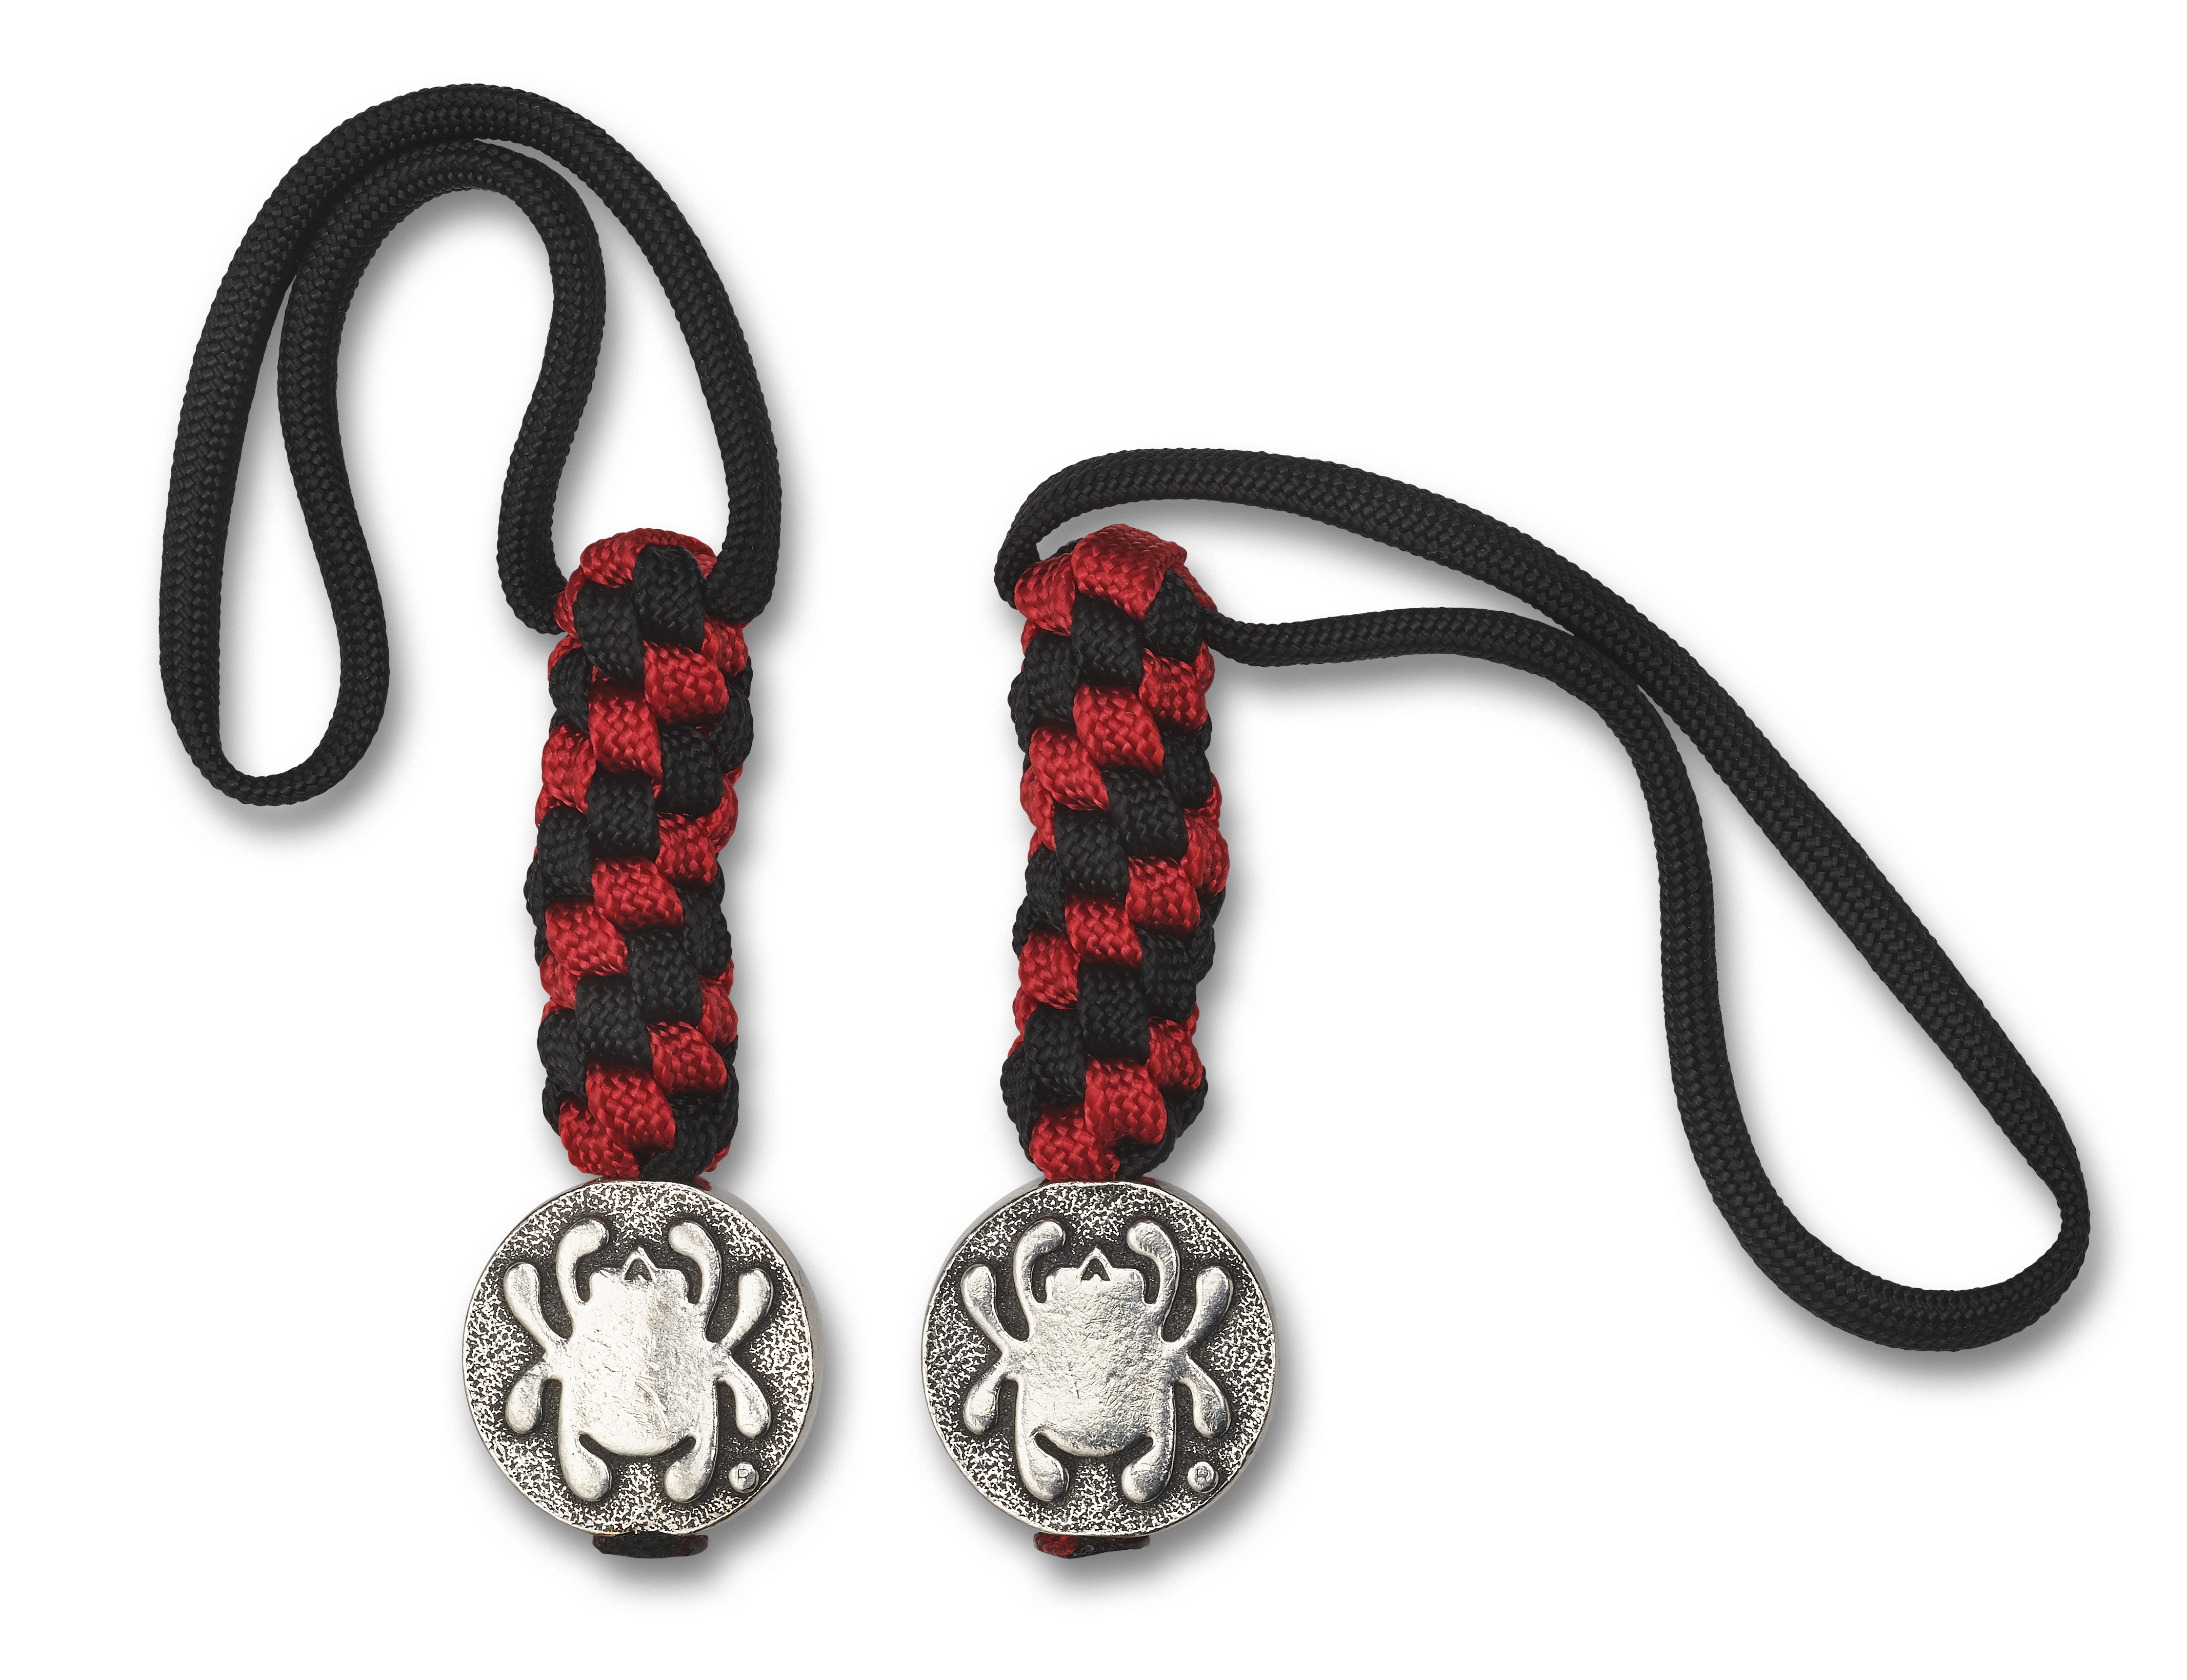 Spyderco Round Pewter Bead with Bug Logo and Hand-Braided Black and Red Paracord Lanyard BEAD5LY